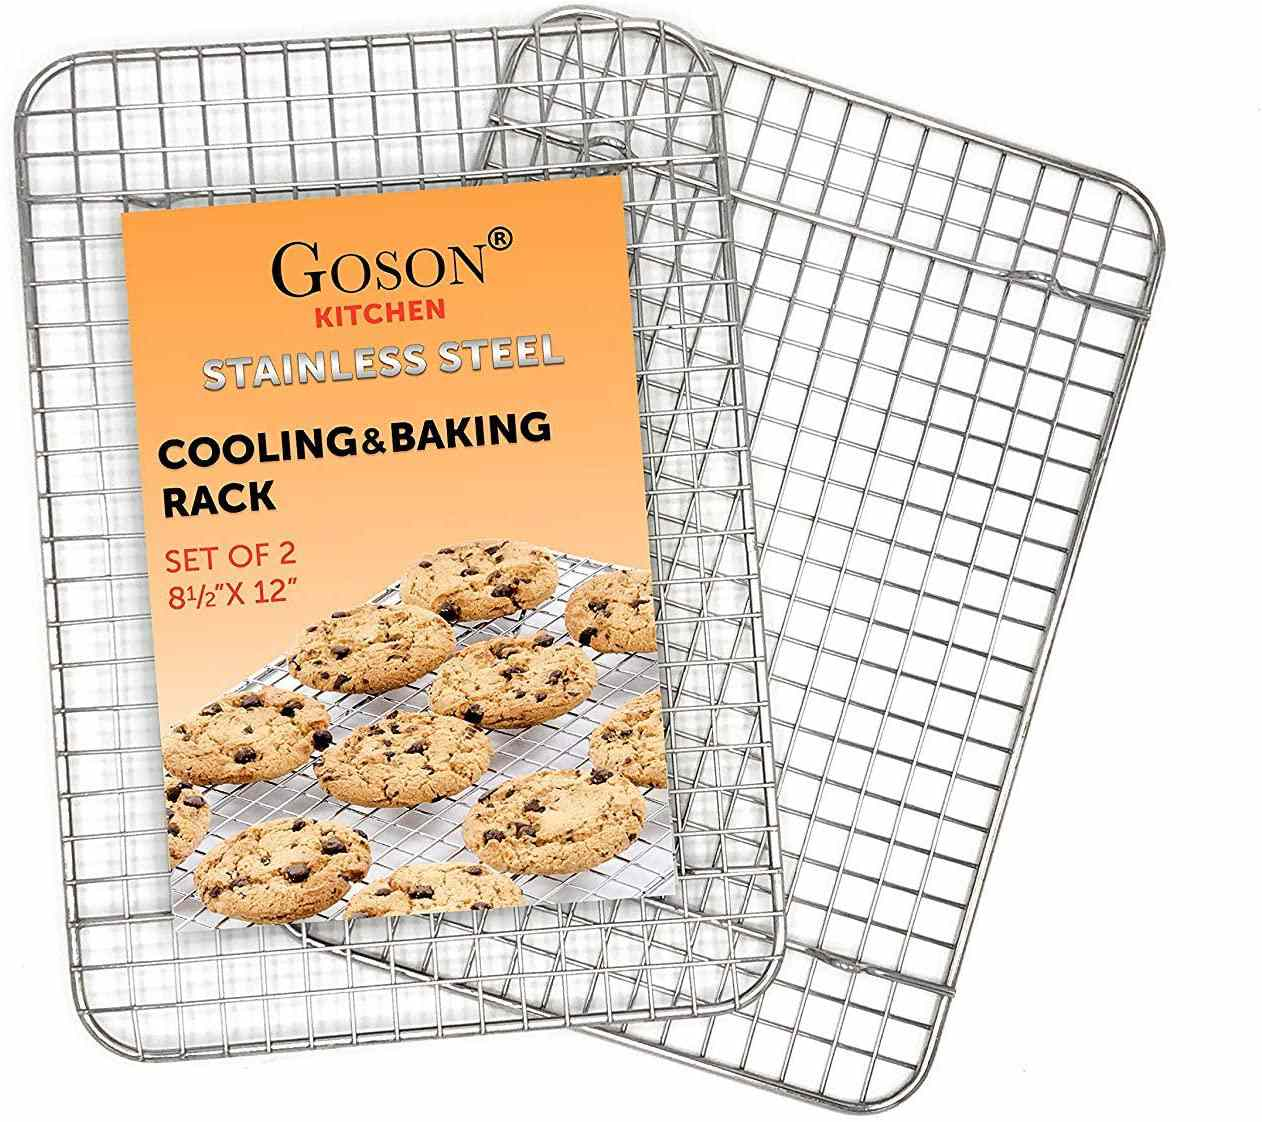 Goson Kitchen Stainless Steel Cooling and Baking Rack, Set of 2